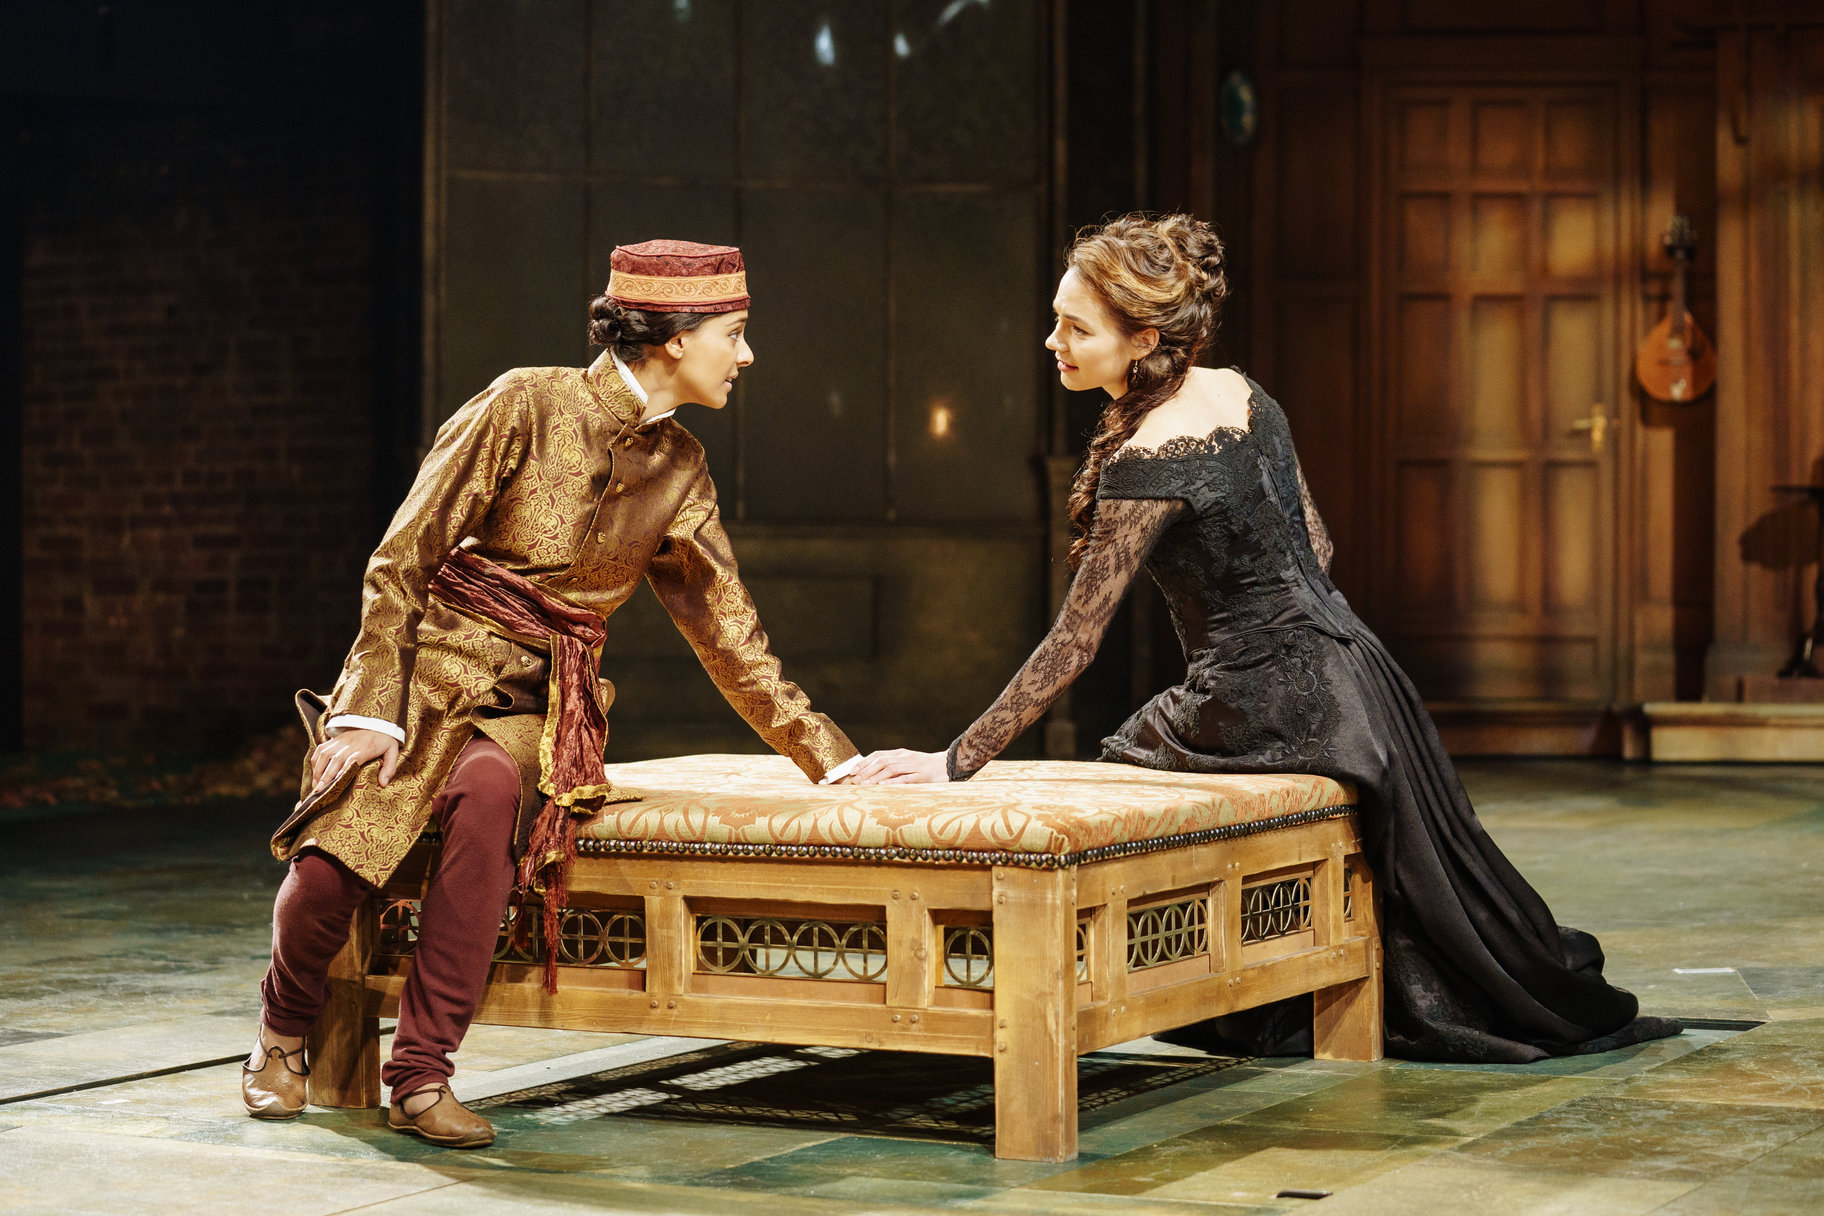 Olivia touches 'Cesario's' hand as they both sit on a square bench in the 2017 production of Twelfth Night.